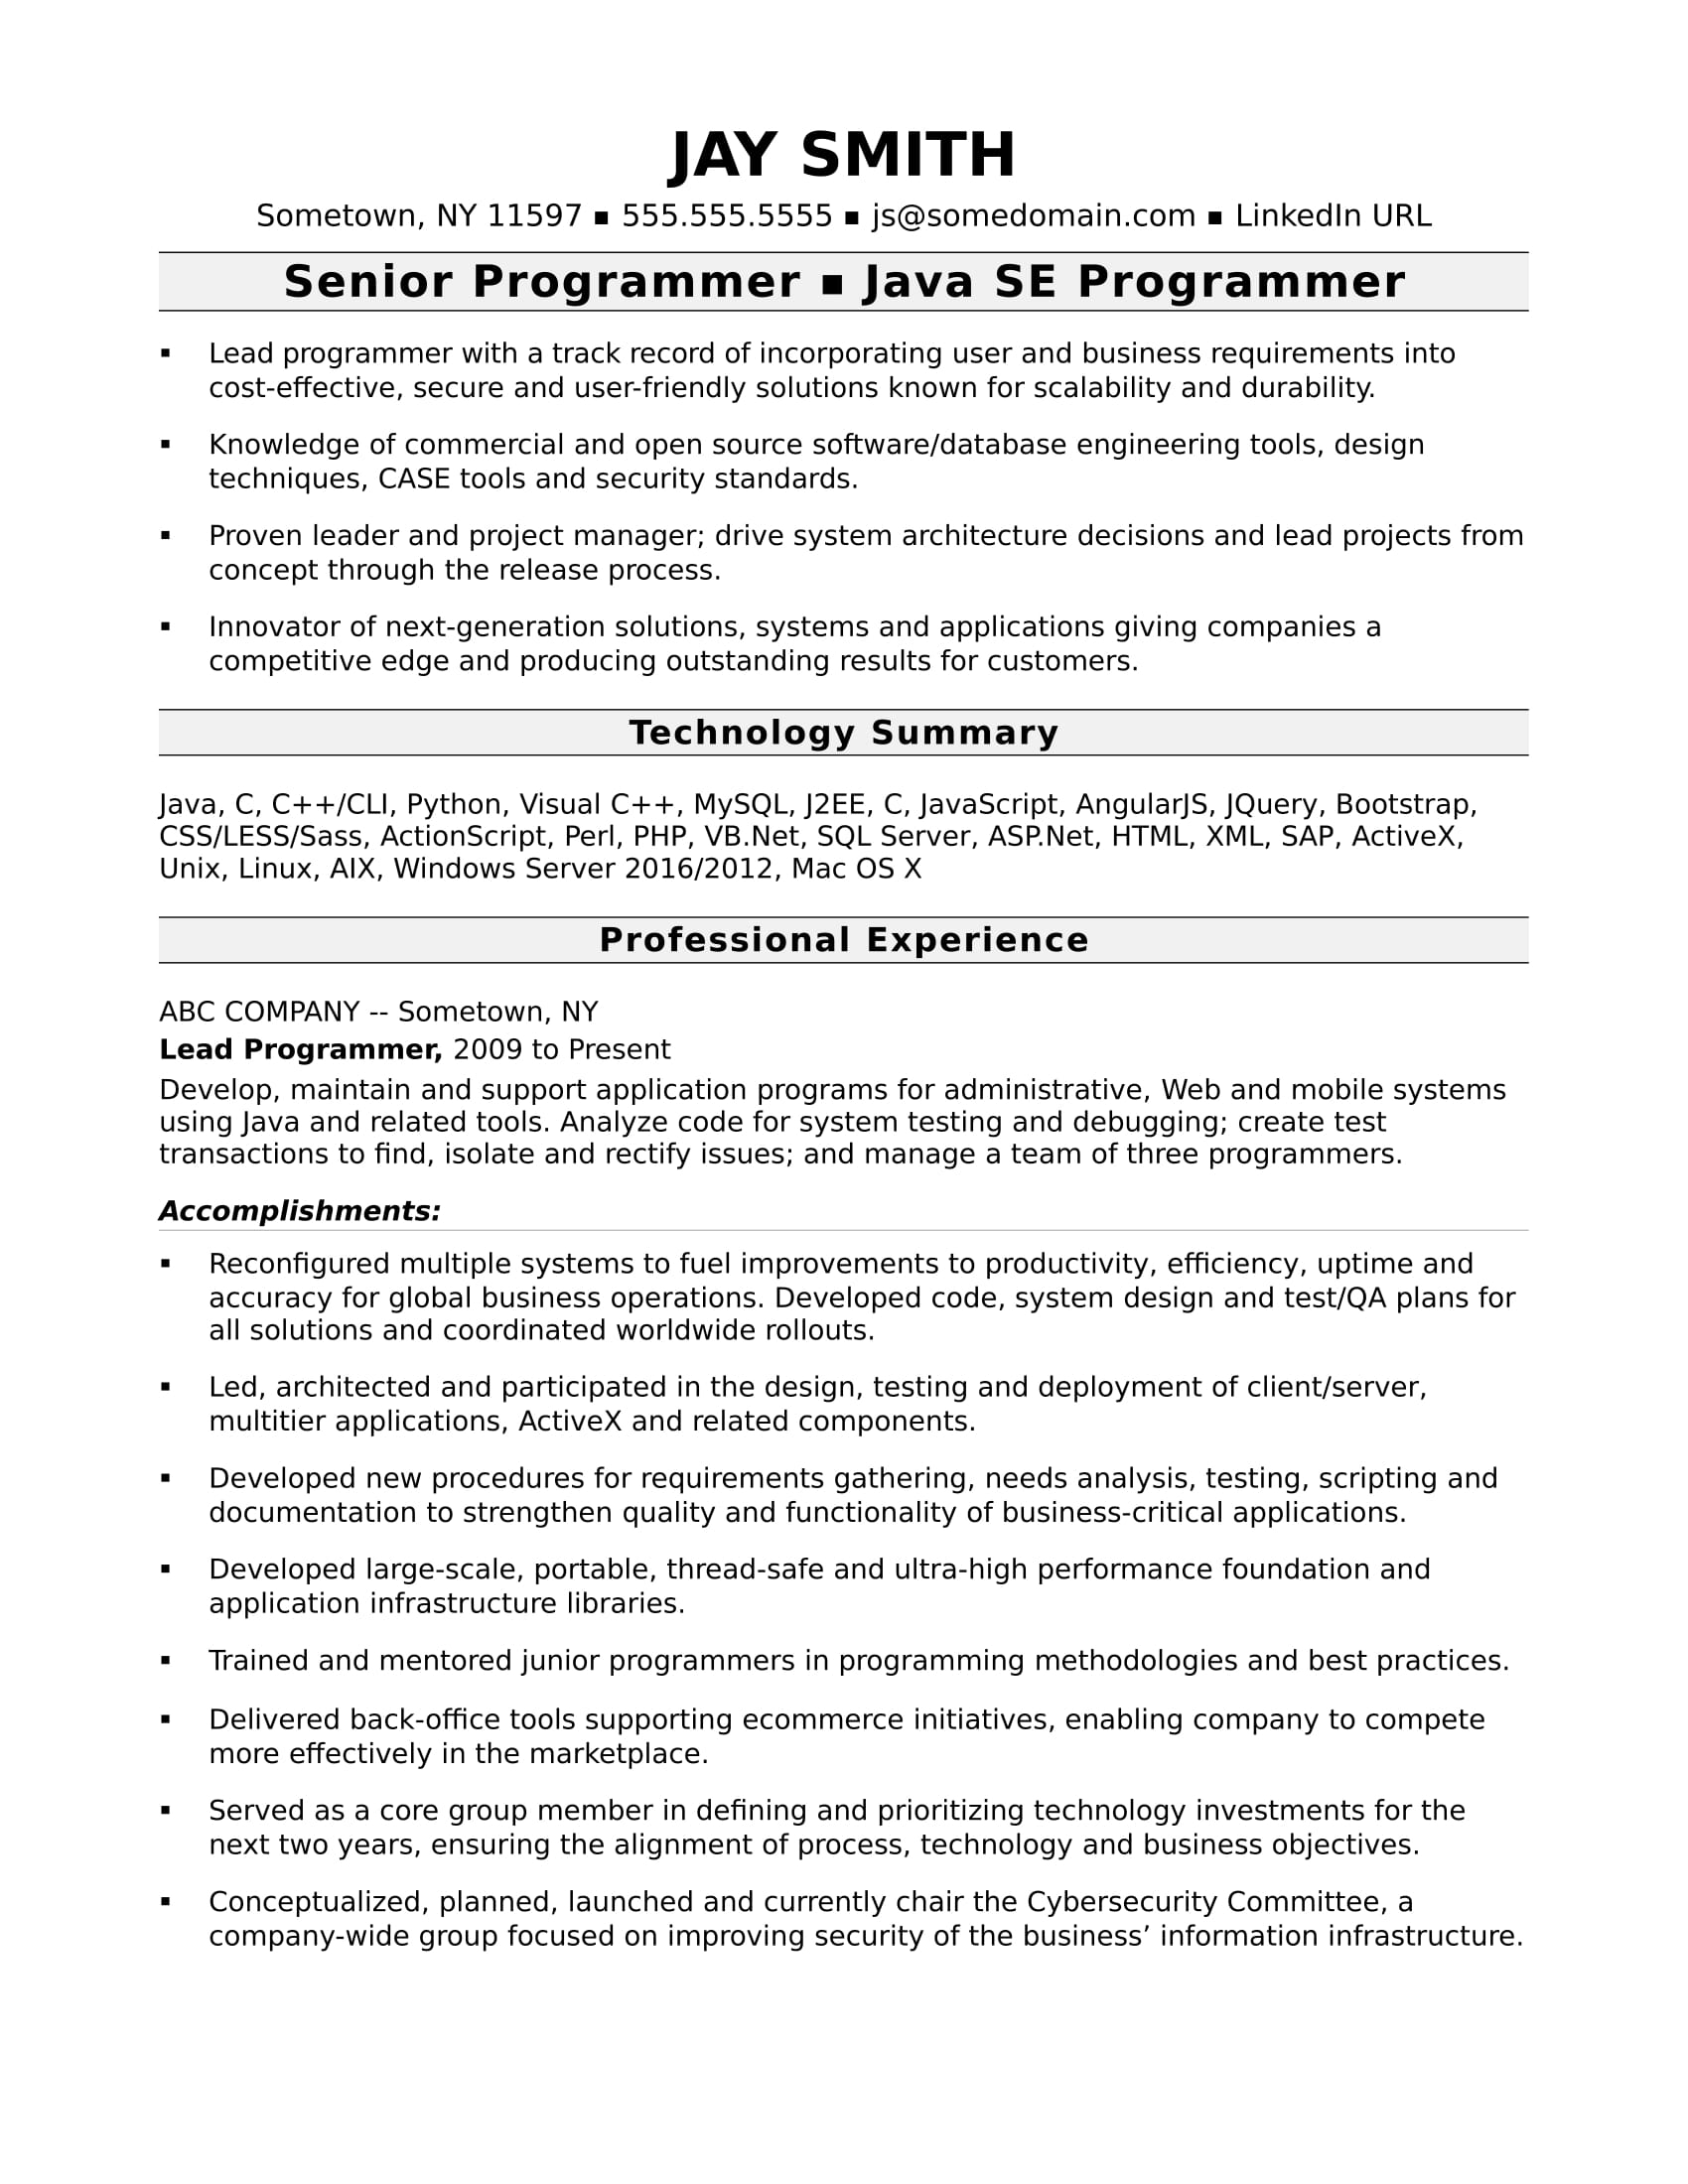 sample resume for an experienced computer programmer monster com